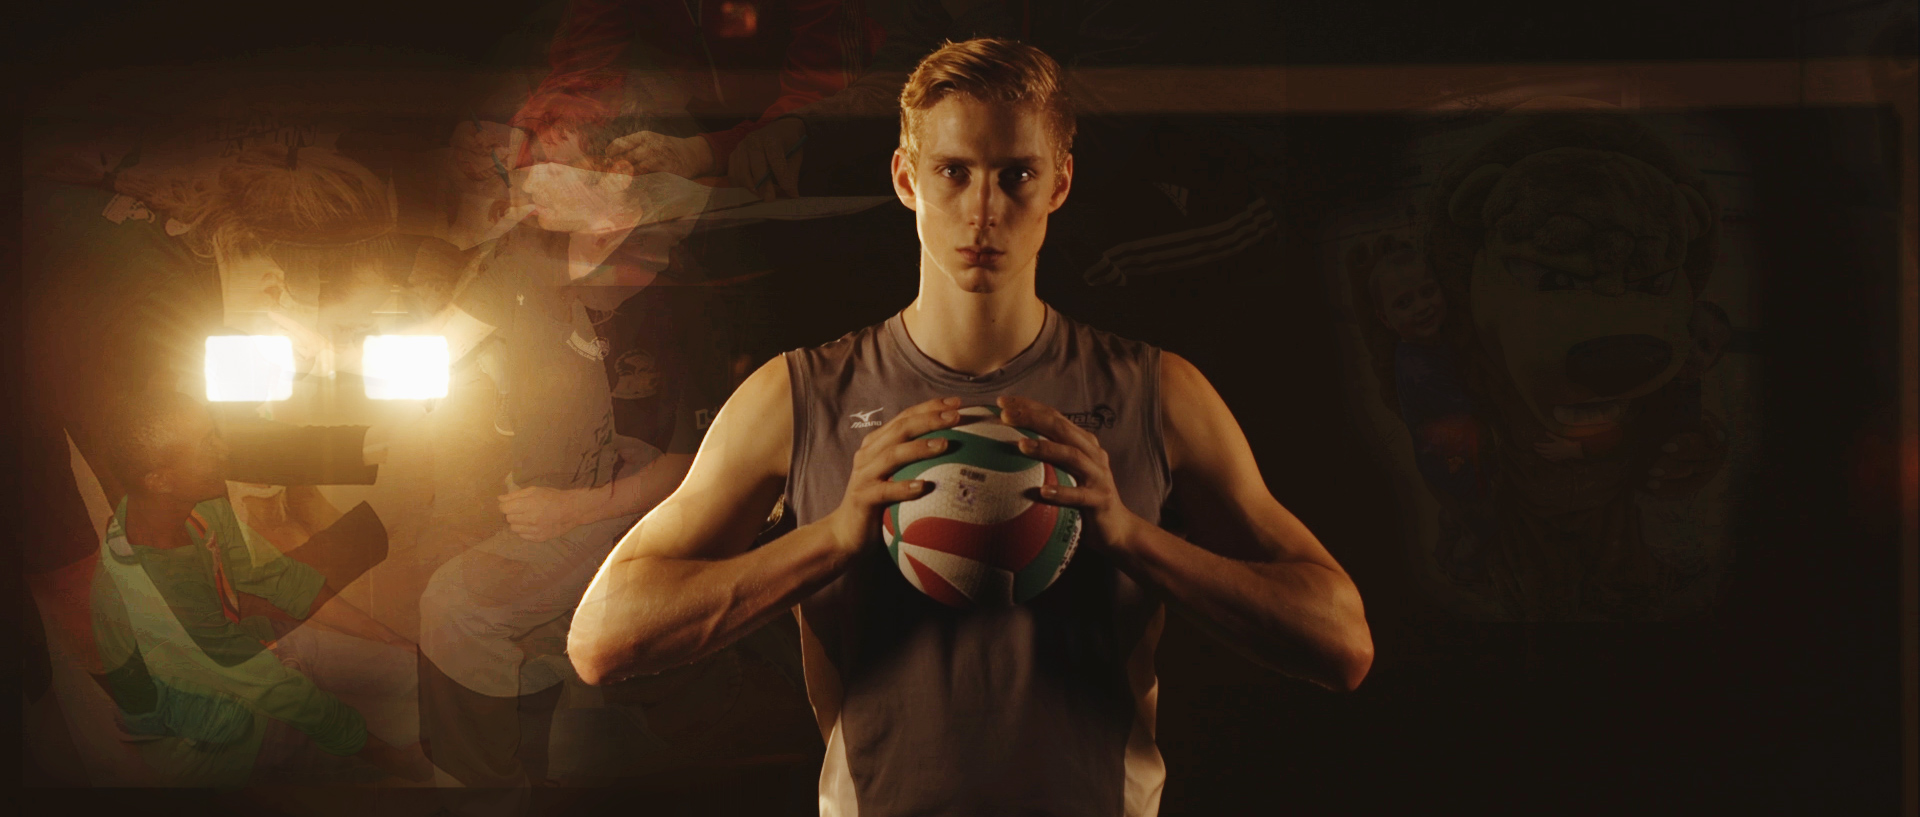 CCAA 2016 Men's National Volleyball Championship Promo Video